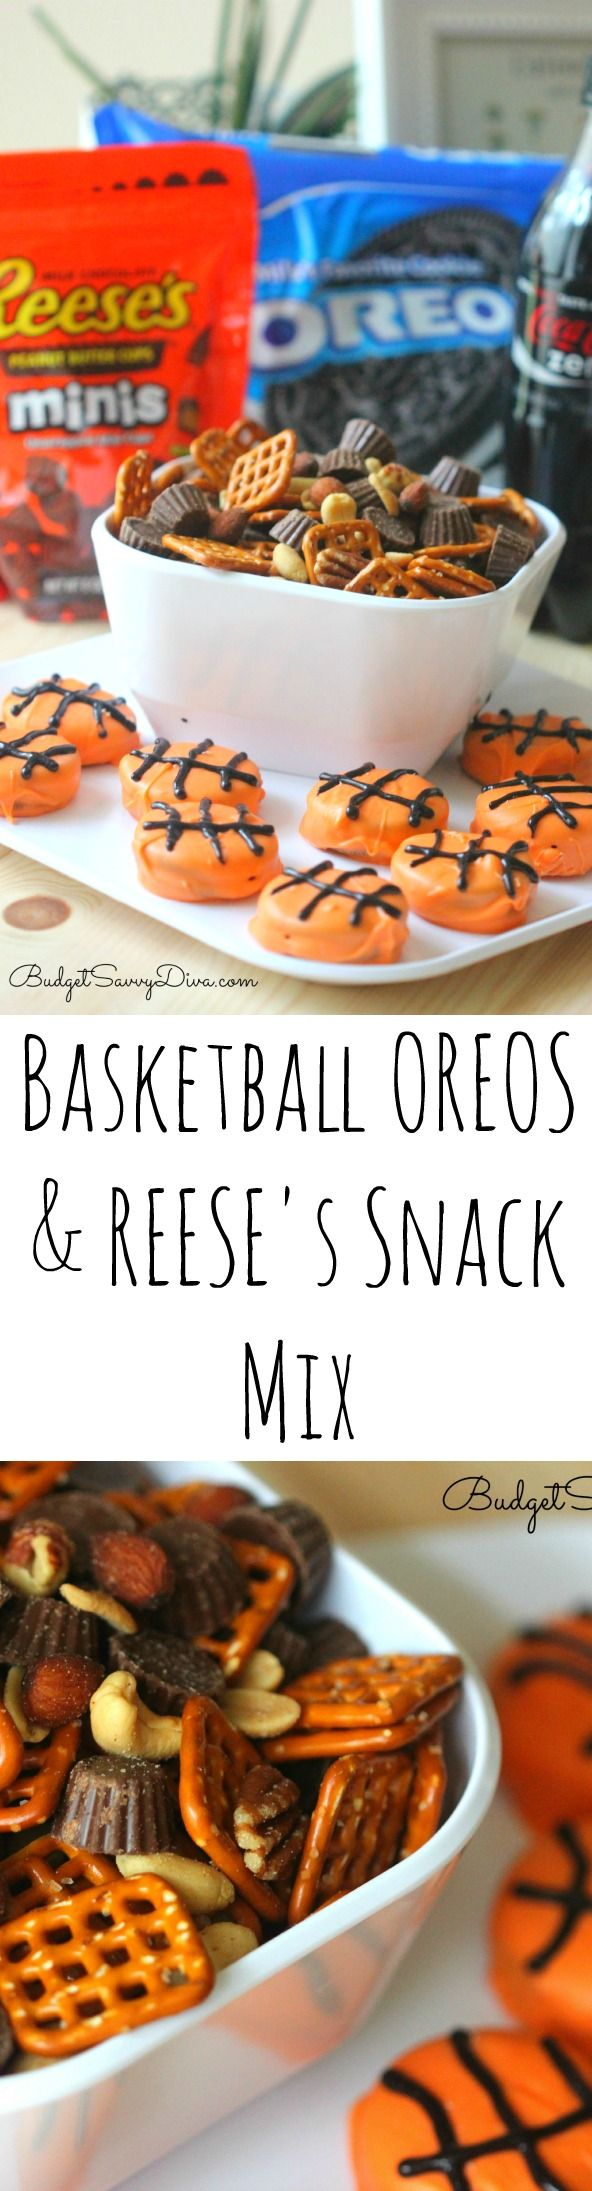 Basketball OREOS Cookies and REESE's Snack Mix Recipe